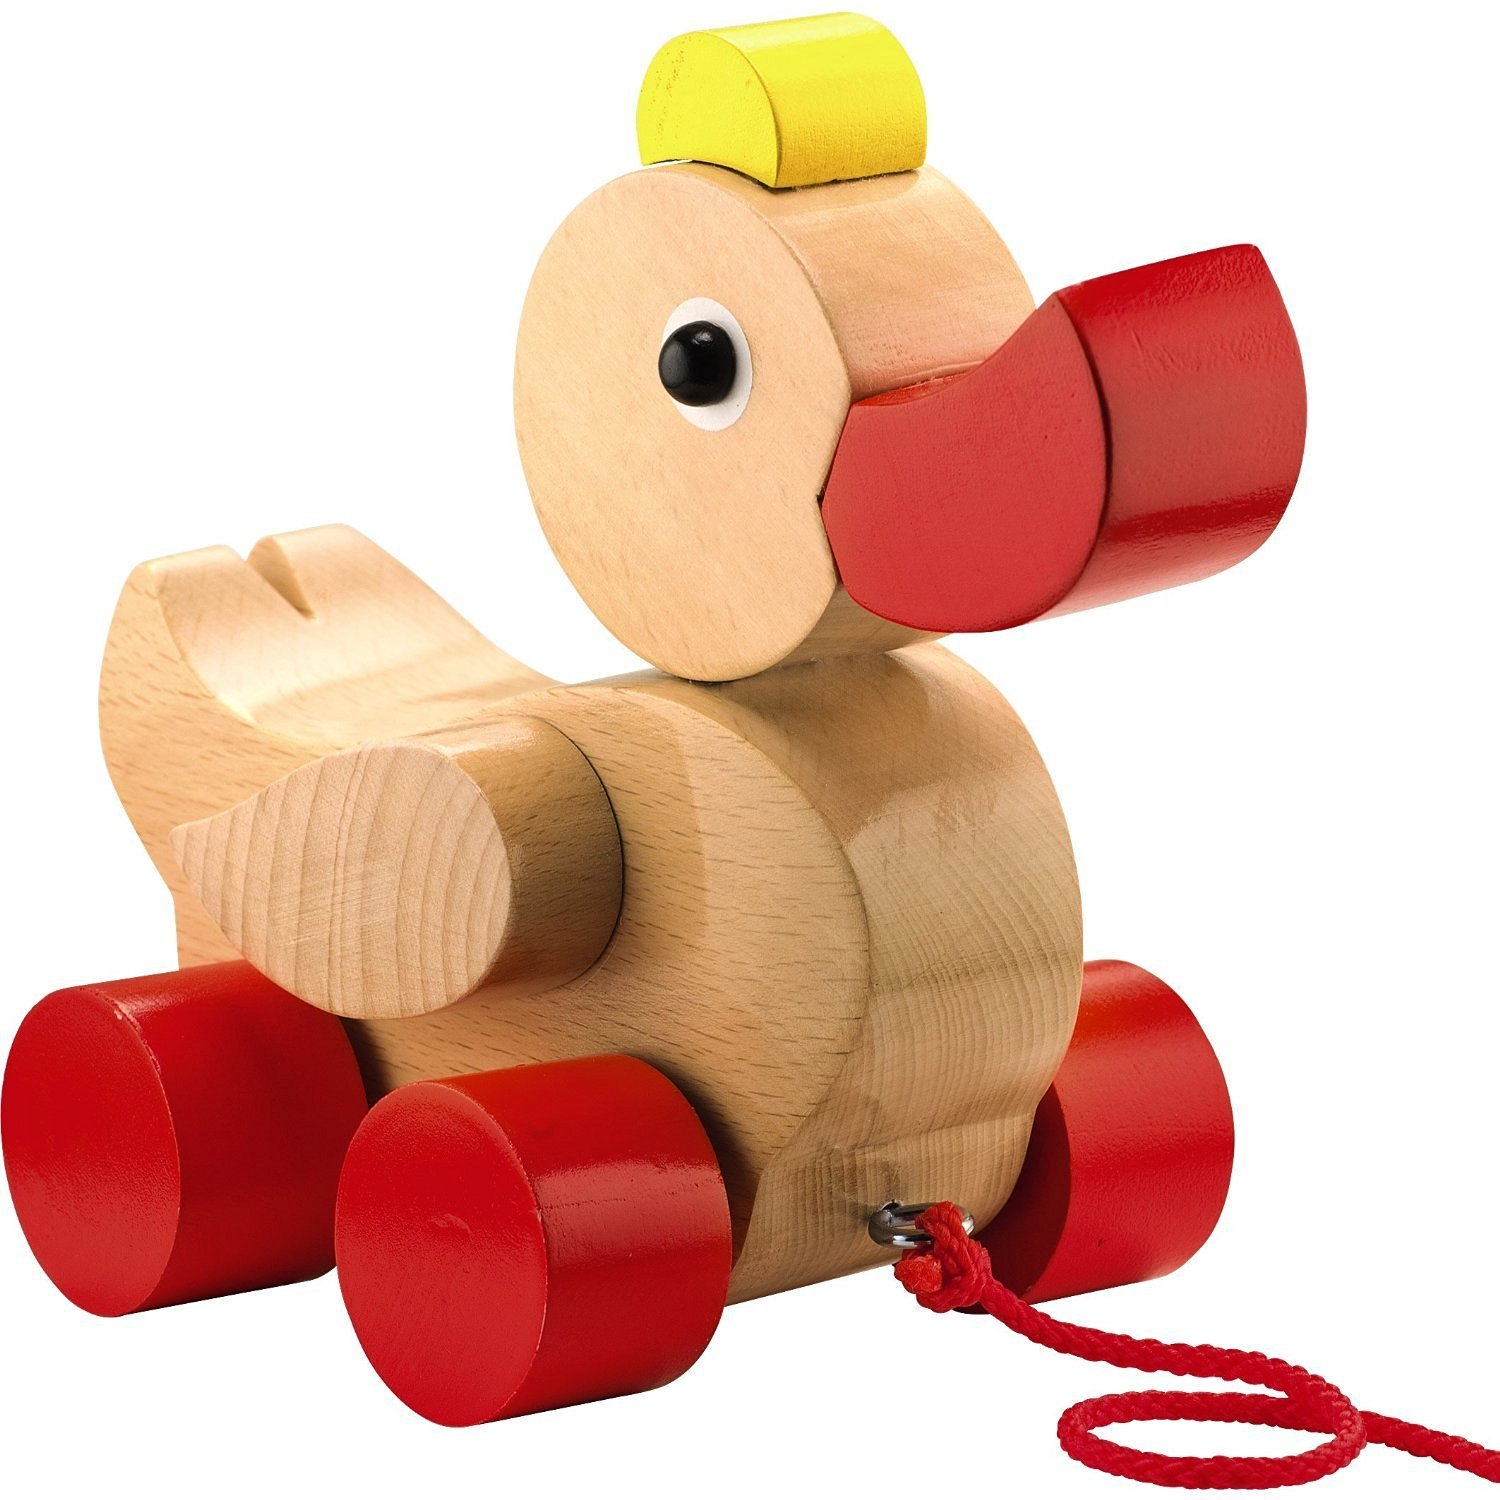 HABA Quack Pull Classic Wooden Duck Pull Toy Heirloom Quality Wobbling Toddler Toy Ages 1 Up